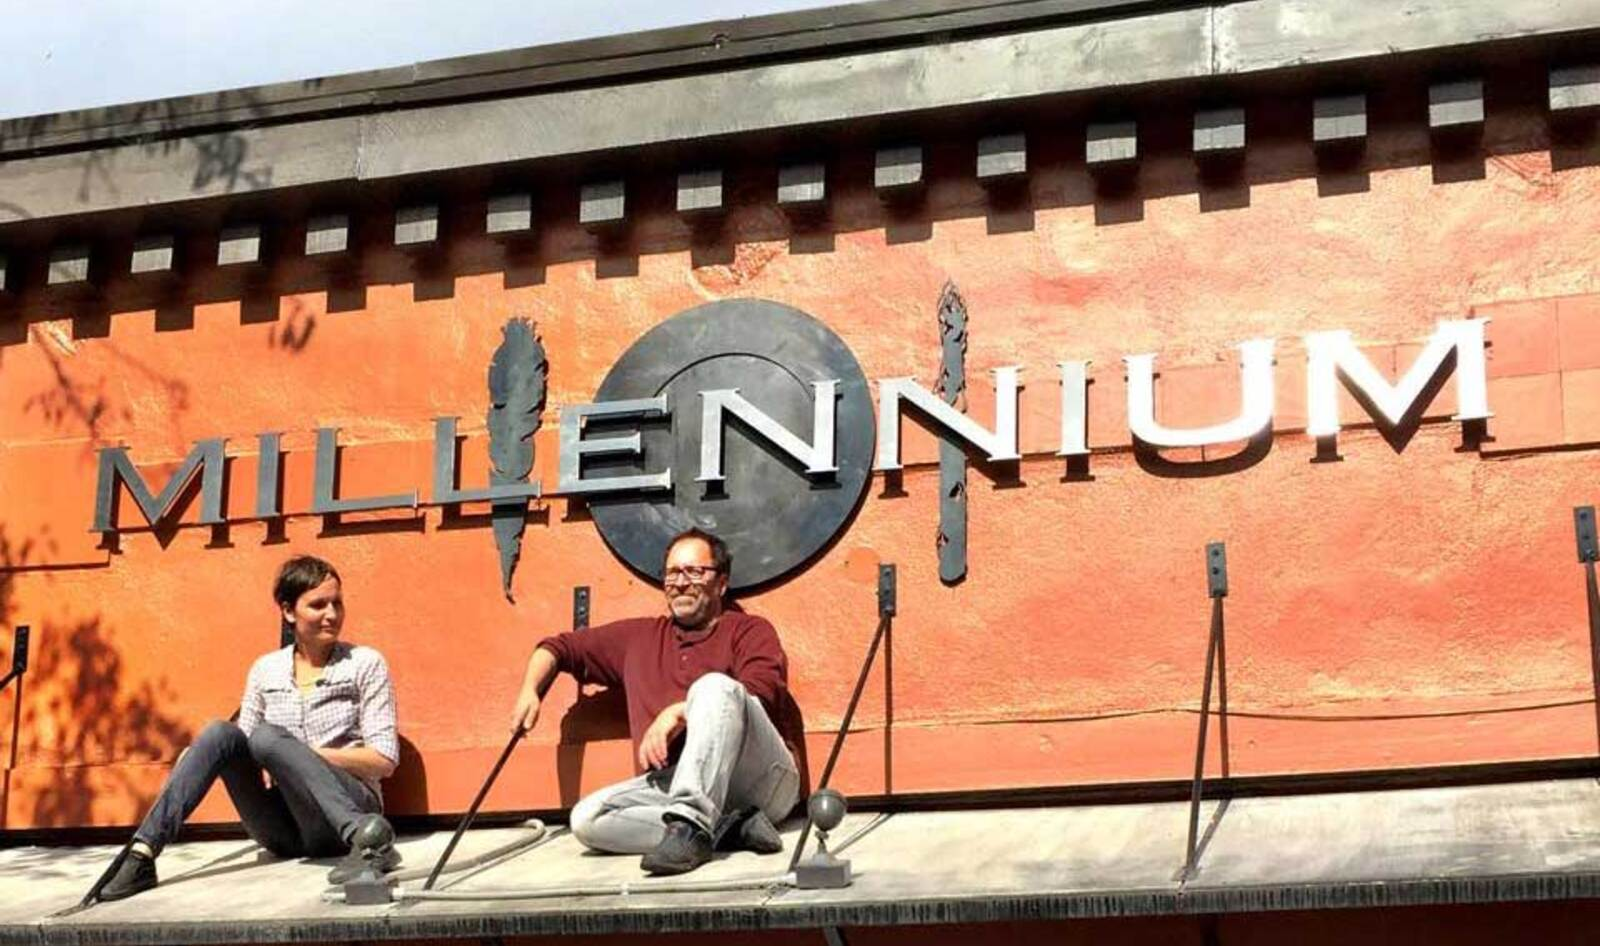 Team Behind Iconic Millennium Restaurant is Opening a New Brewpub in San Francisco